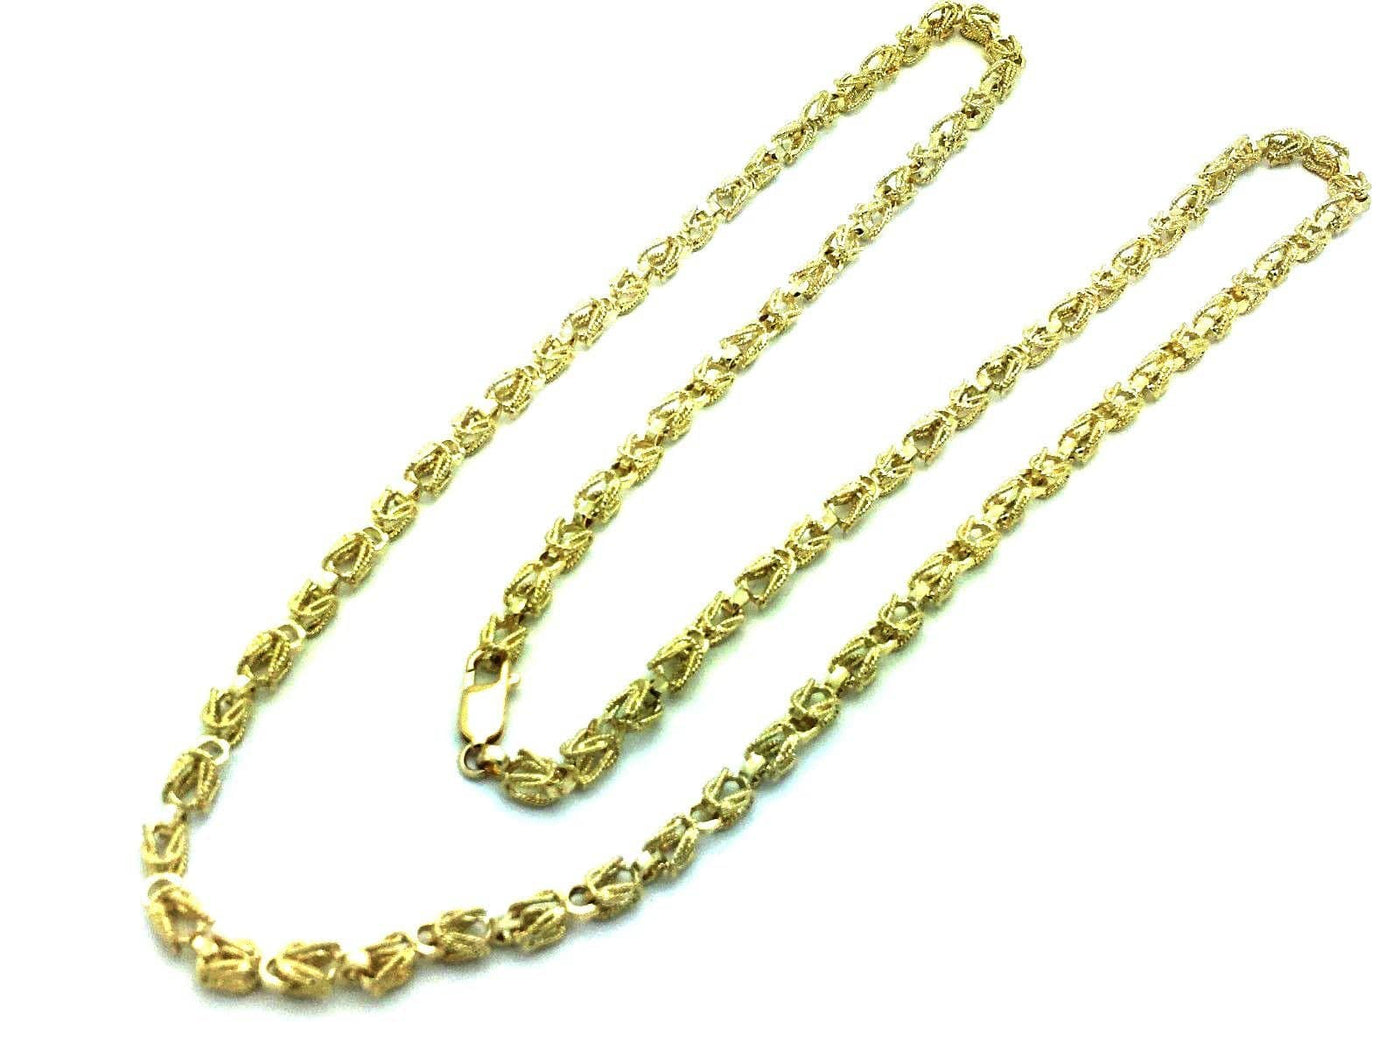 67c37f4ce12c8f 9MM Womens 10K Yellow Gold Turkish Style Link Chain Necklace 26